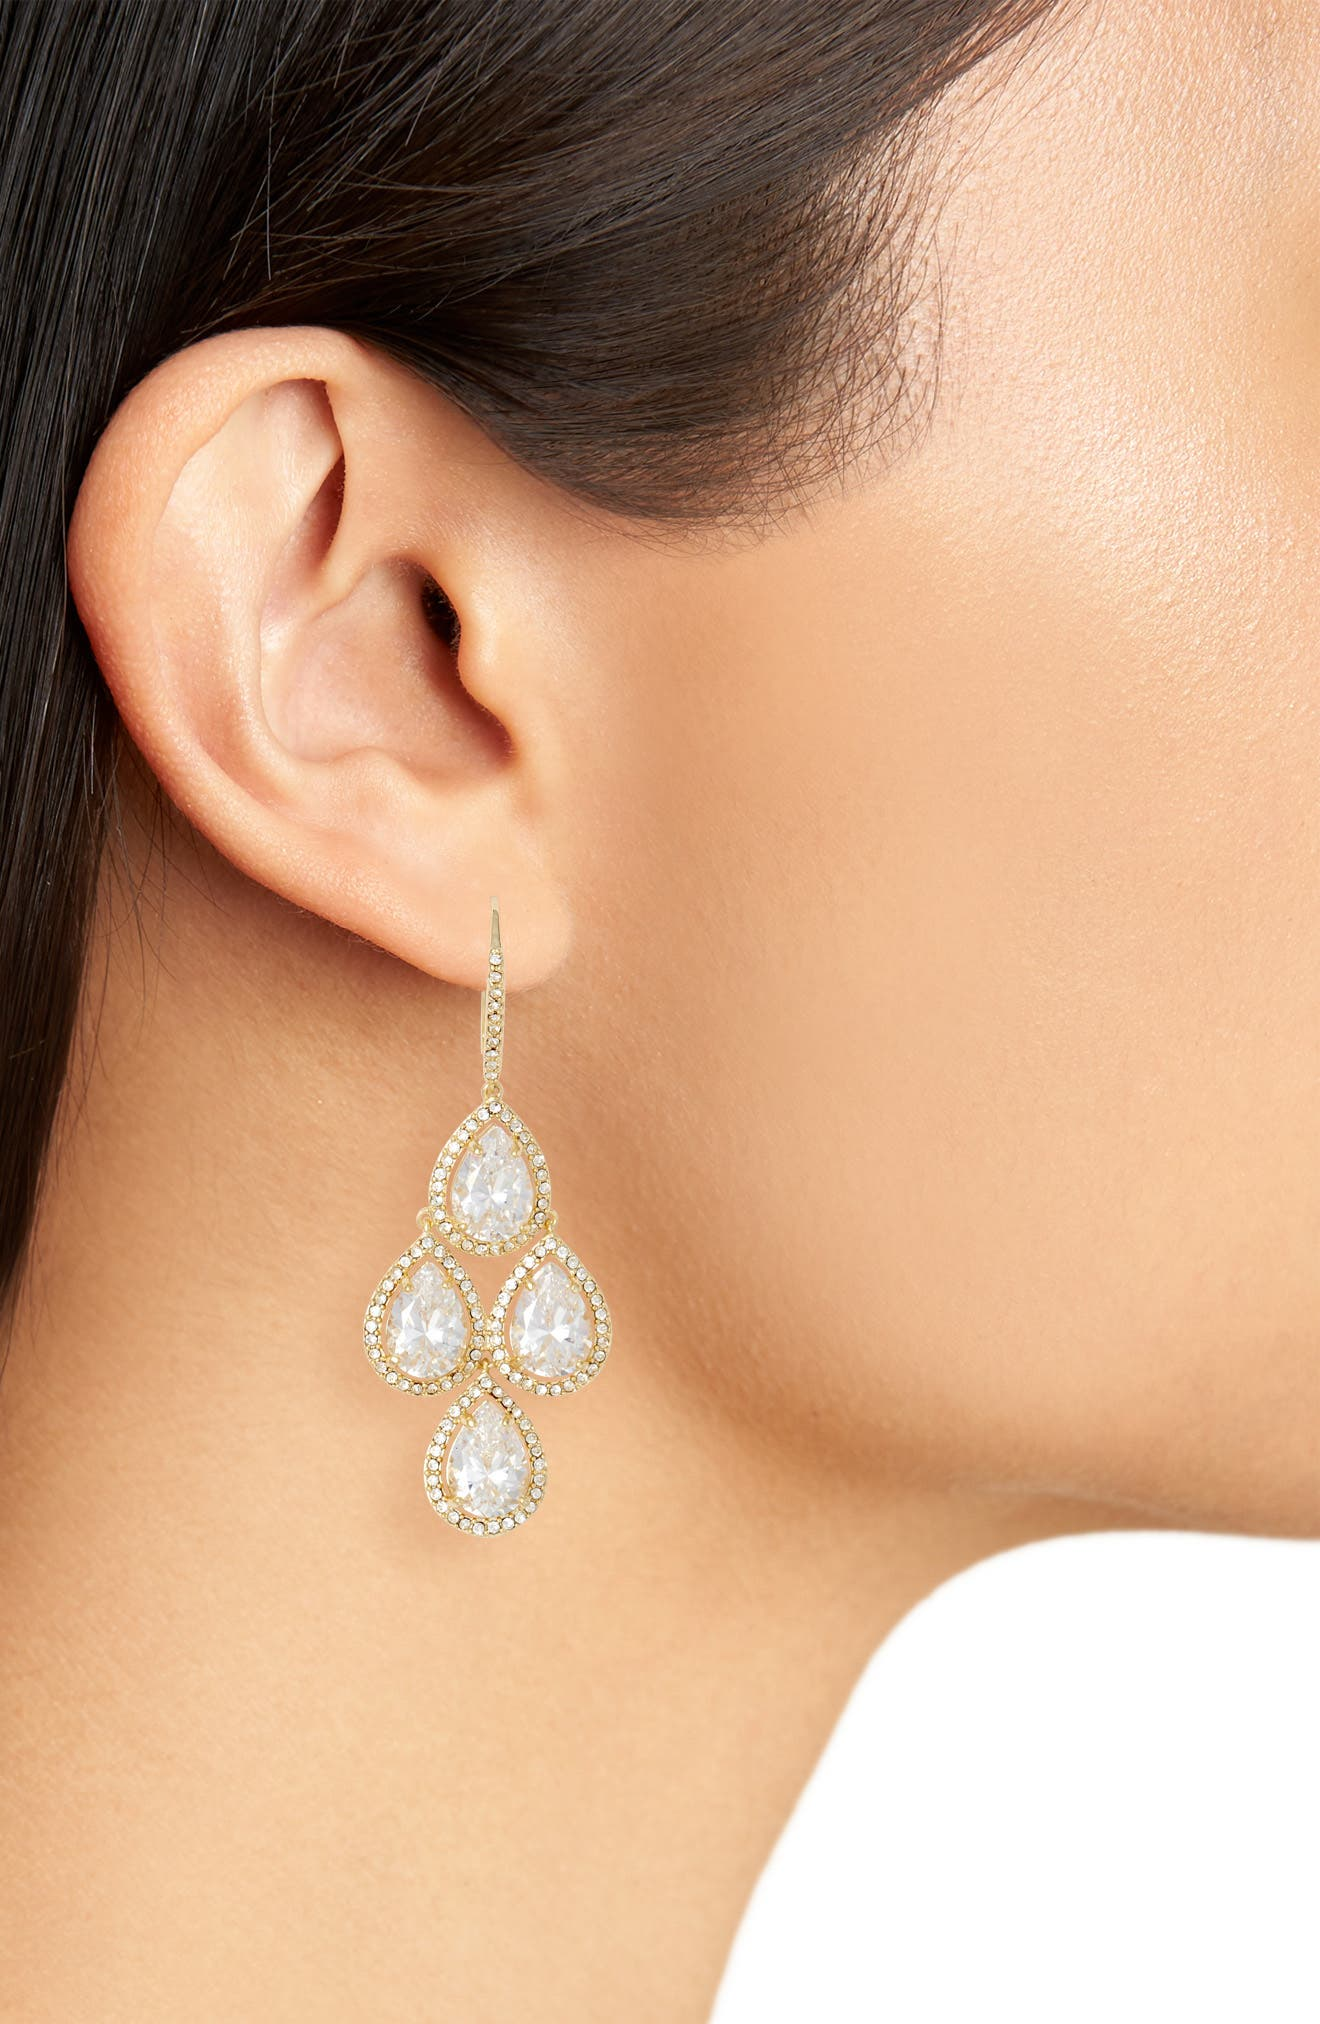 Crystal Chandelier Earrings,                             Alternate thumbnail 2, color,                             CLEAR- GOLD